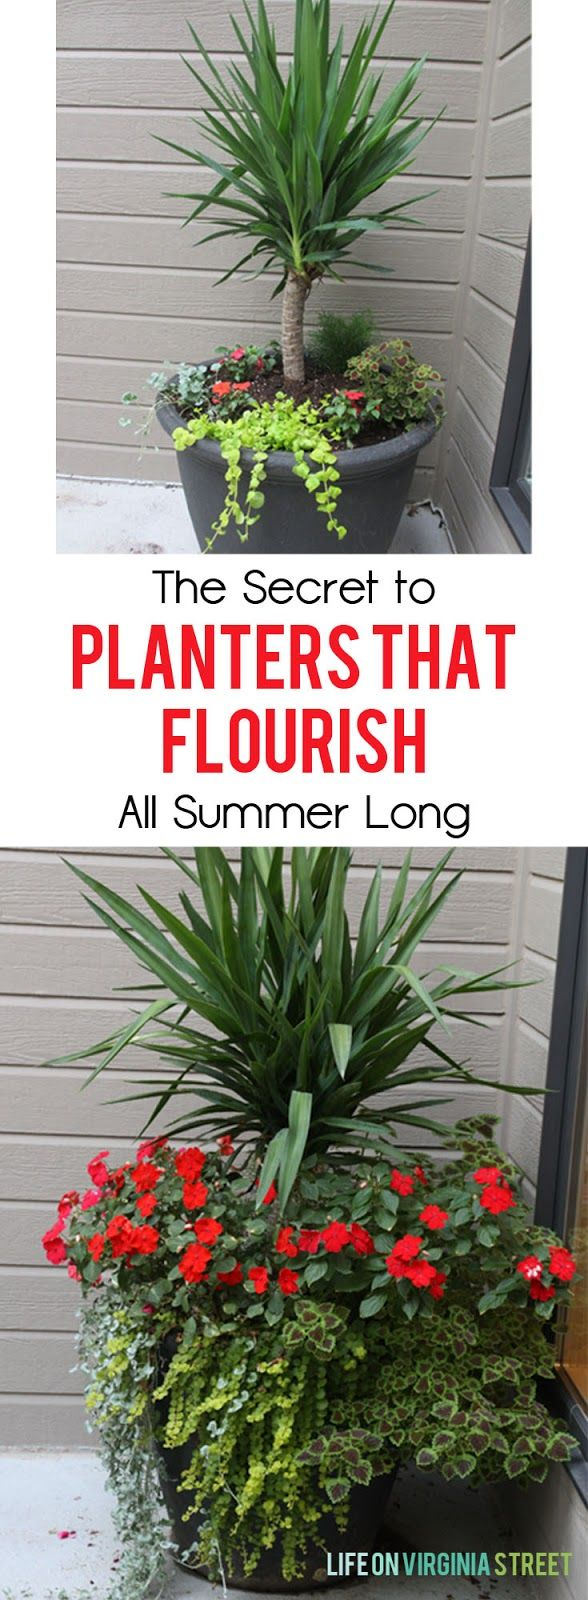 The secret to planters that flourish all summer long - definitely need to try this!